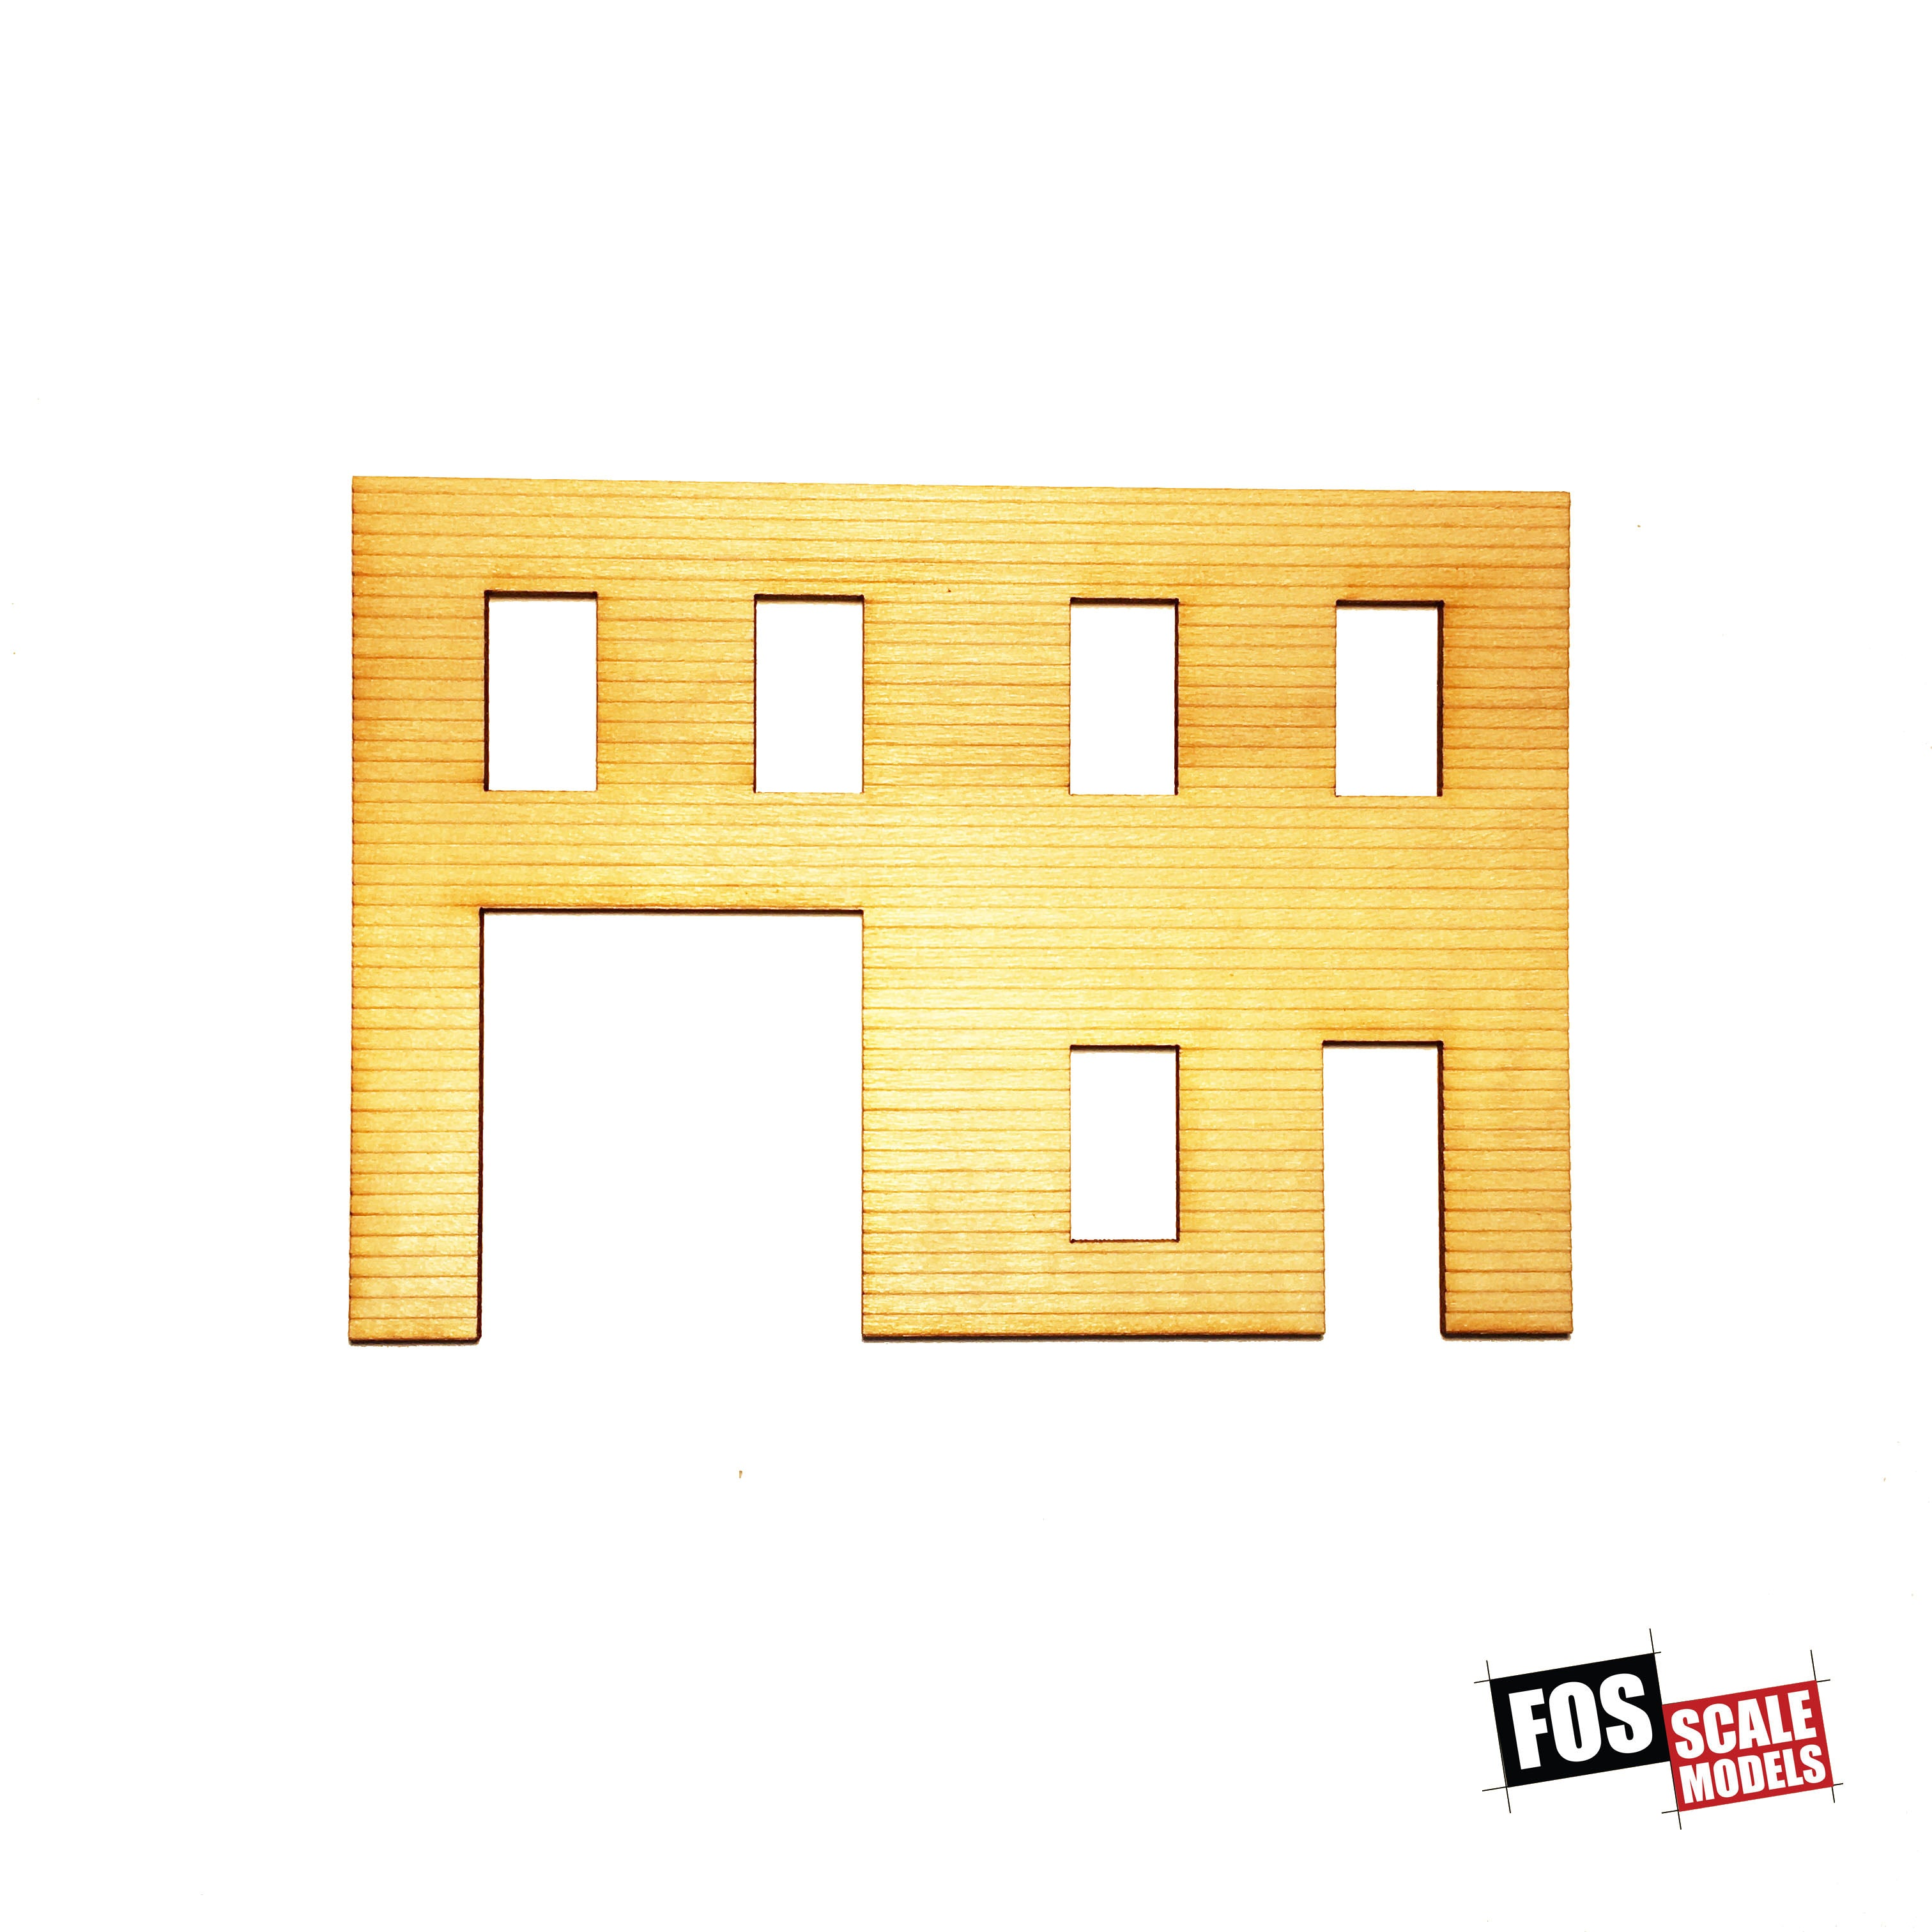 CLAPBOARD WALL SECTION - A 109 HO SCALE